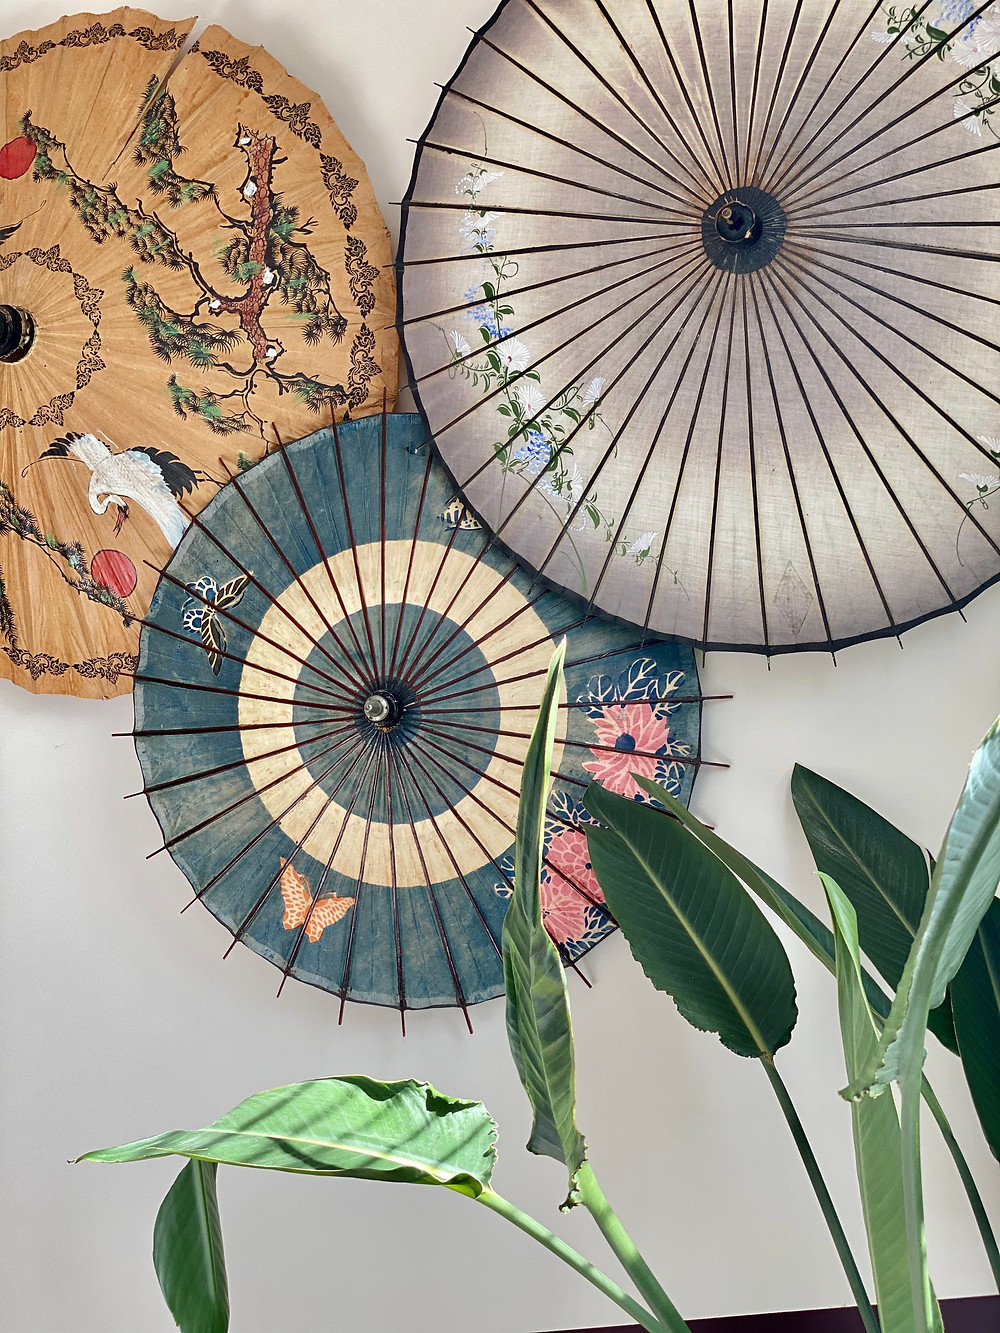 Vintage Parasols as Wall Art